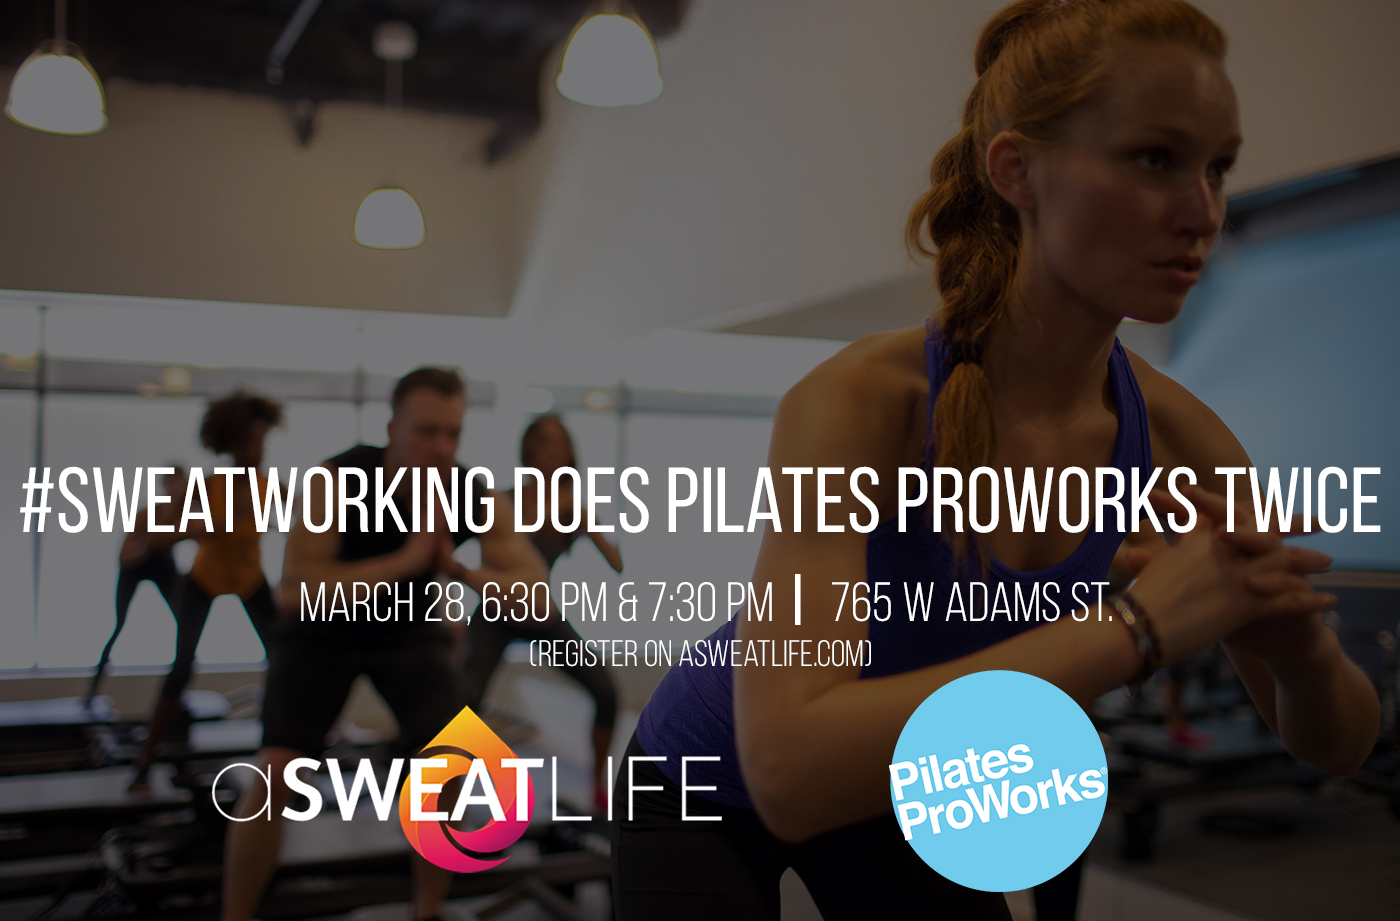 March_Sweatworking_Pilates ProWorks_invite